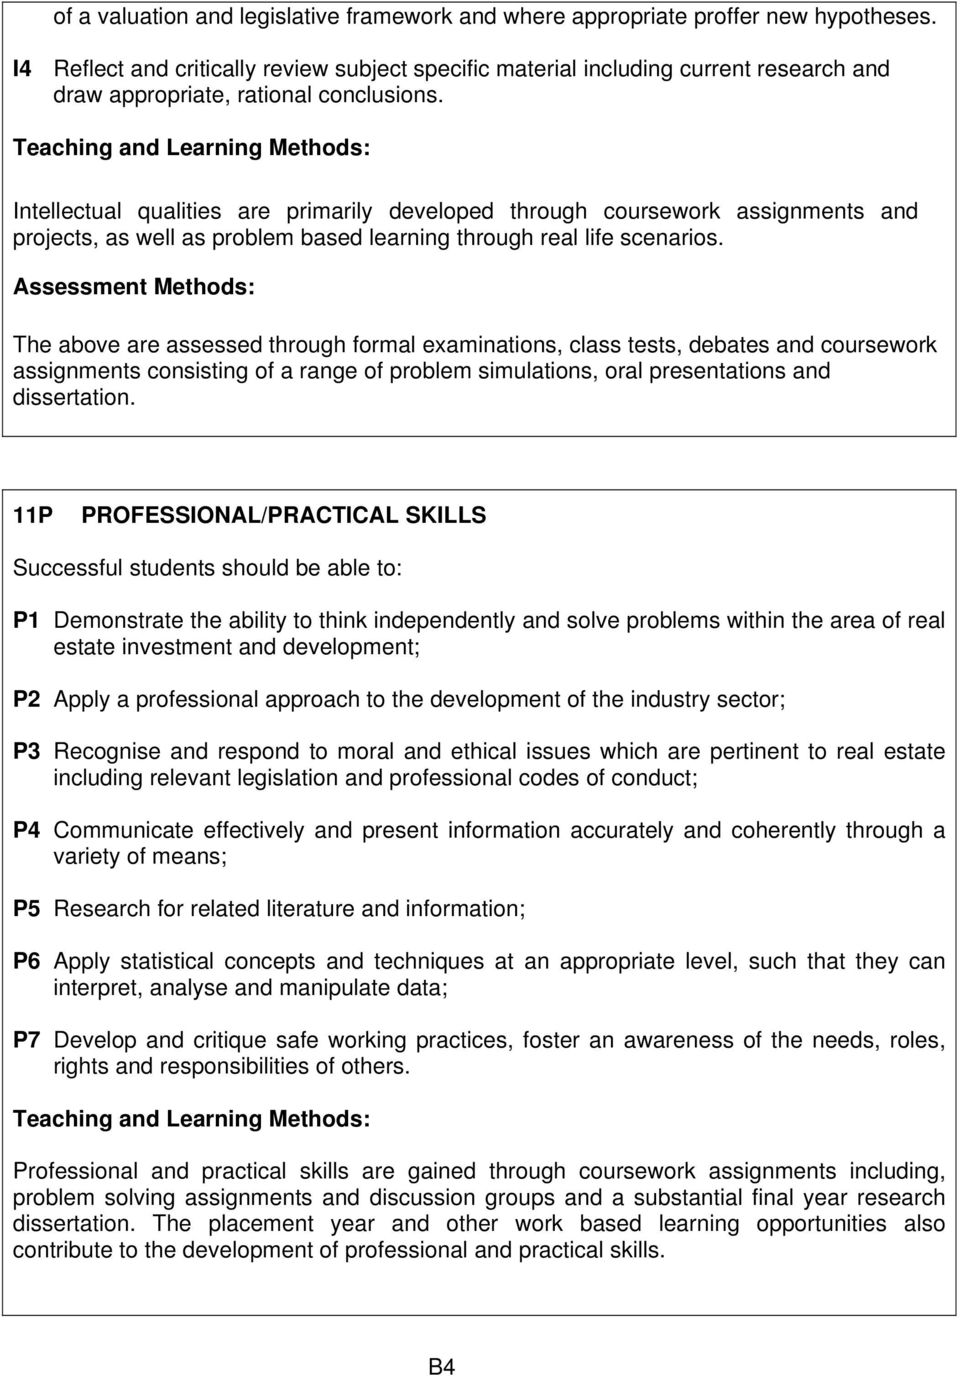 Teaching and Learning Methods: Intellectual qualities are primarily developed through coursework assignments and projects, as well as problem based learning through real life scenarios.